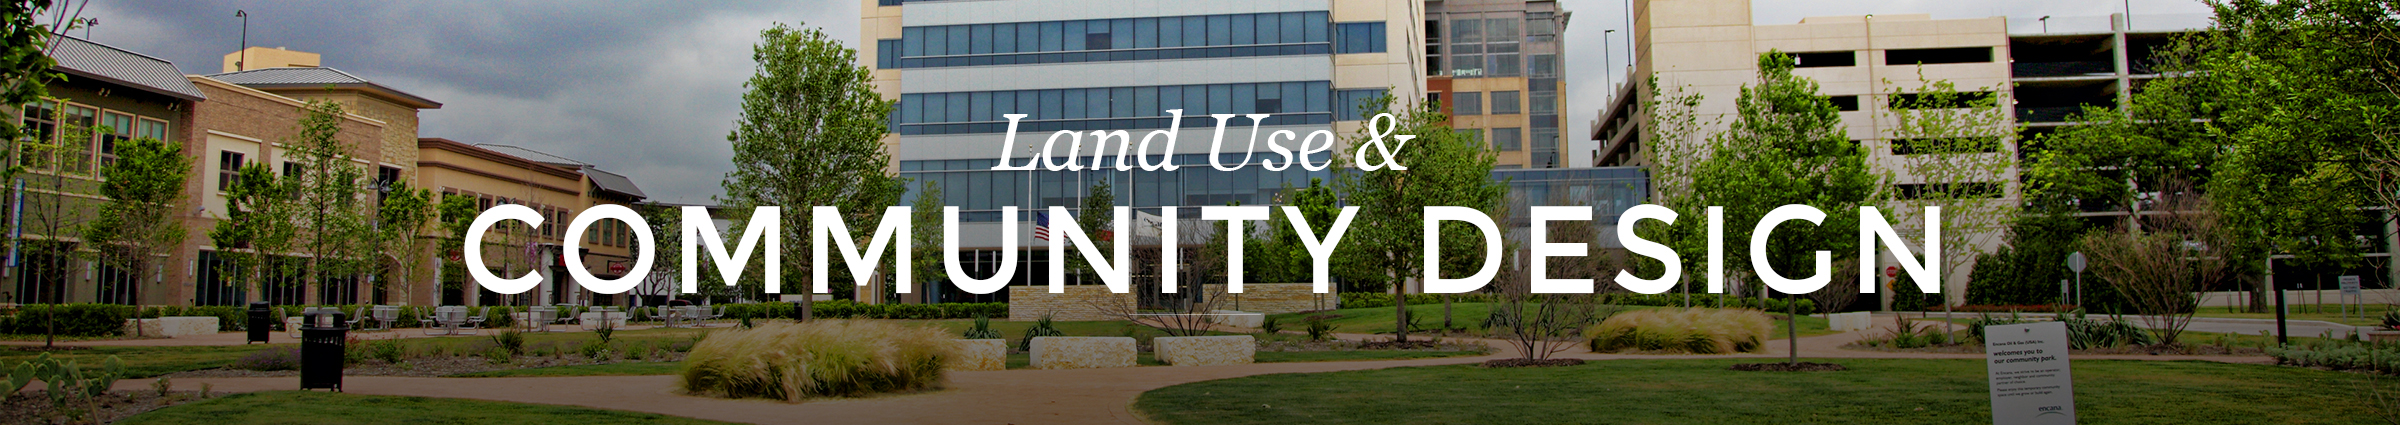 Land Use Community Design